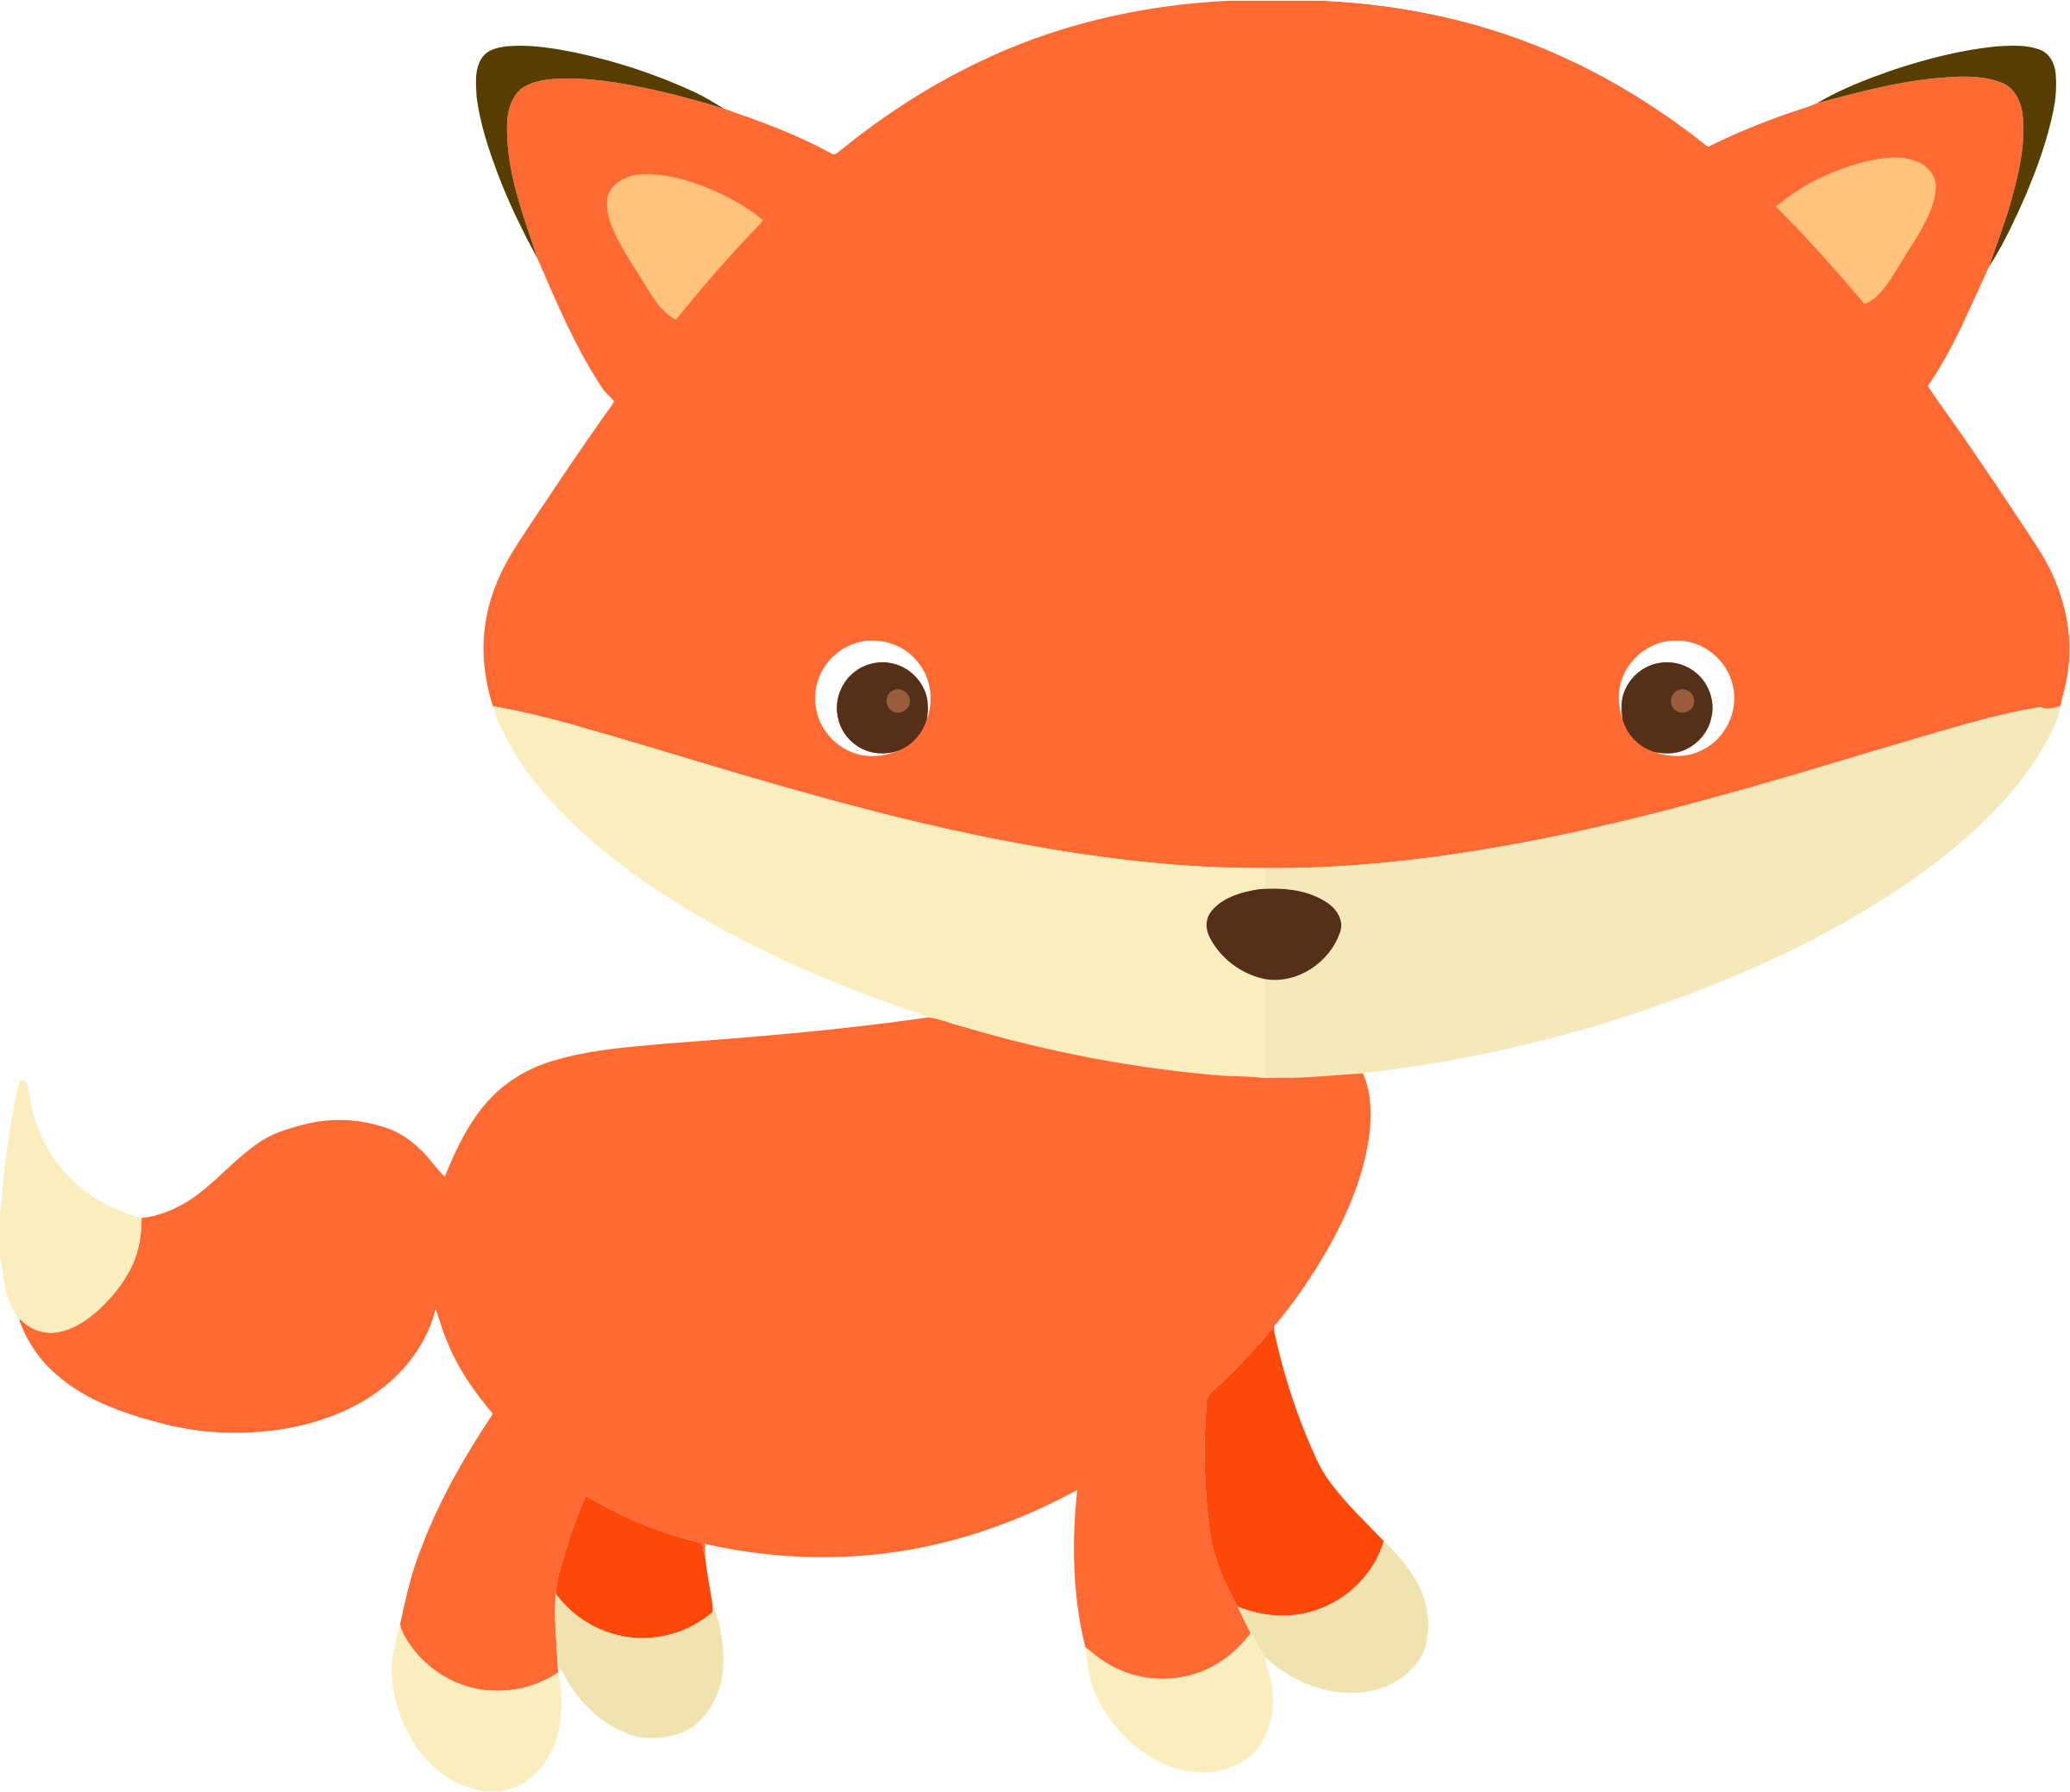 Clipart fox pictures clip art freeuse stock Fox Image Clipart | Free download best Fox Image Clipart on ... clip art freeuse stock